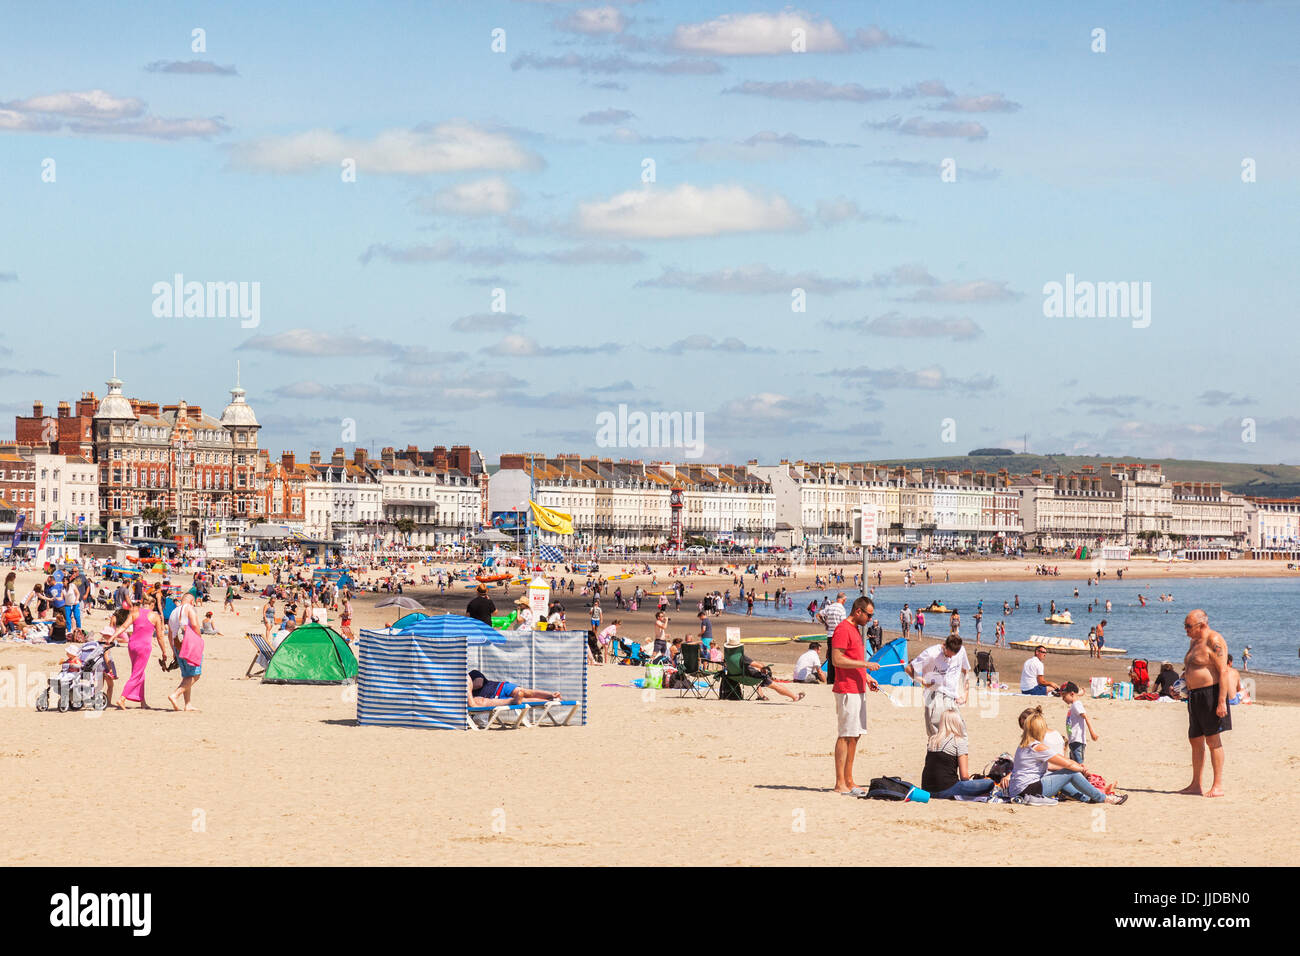 2 July 2017: Weymouth, Dorset, England, UK - People sunbathing on the busy beach on a hot summer day. - Stock Image